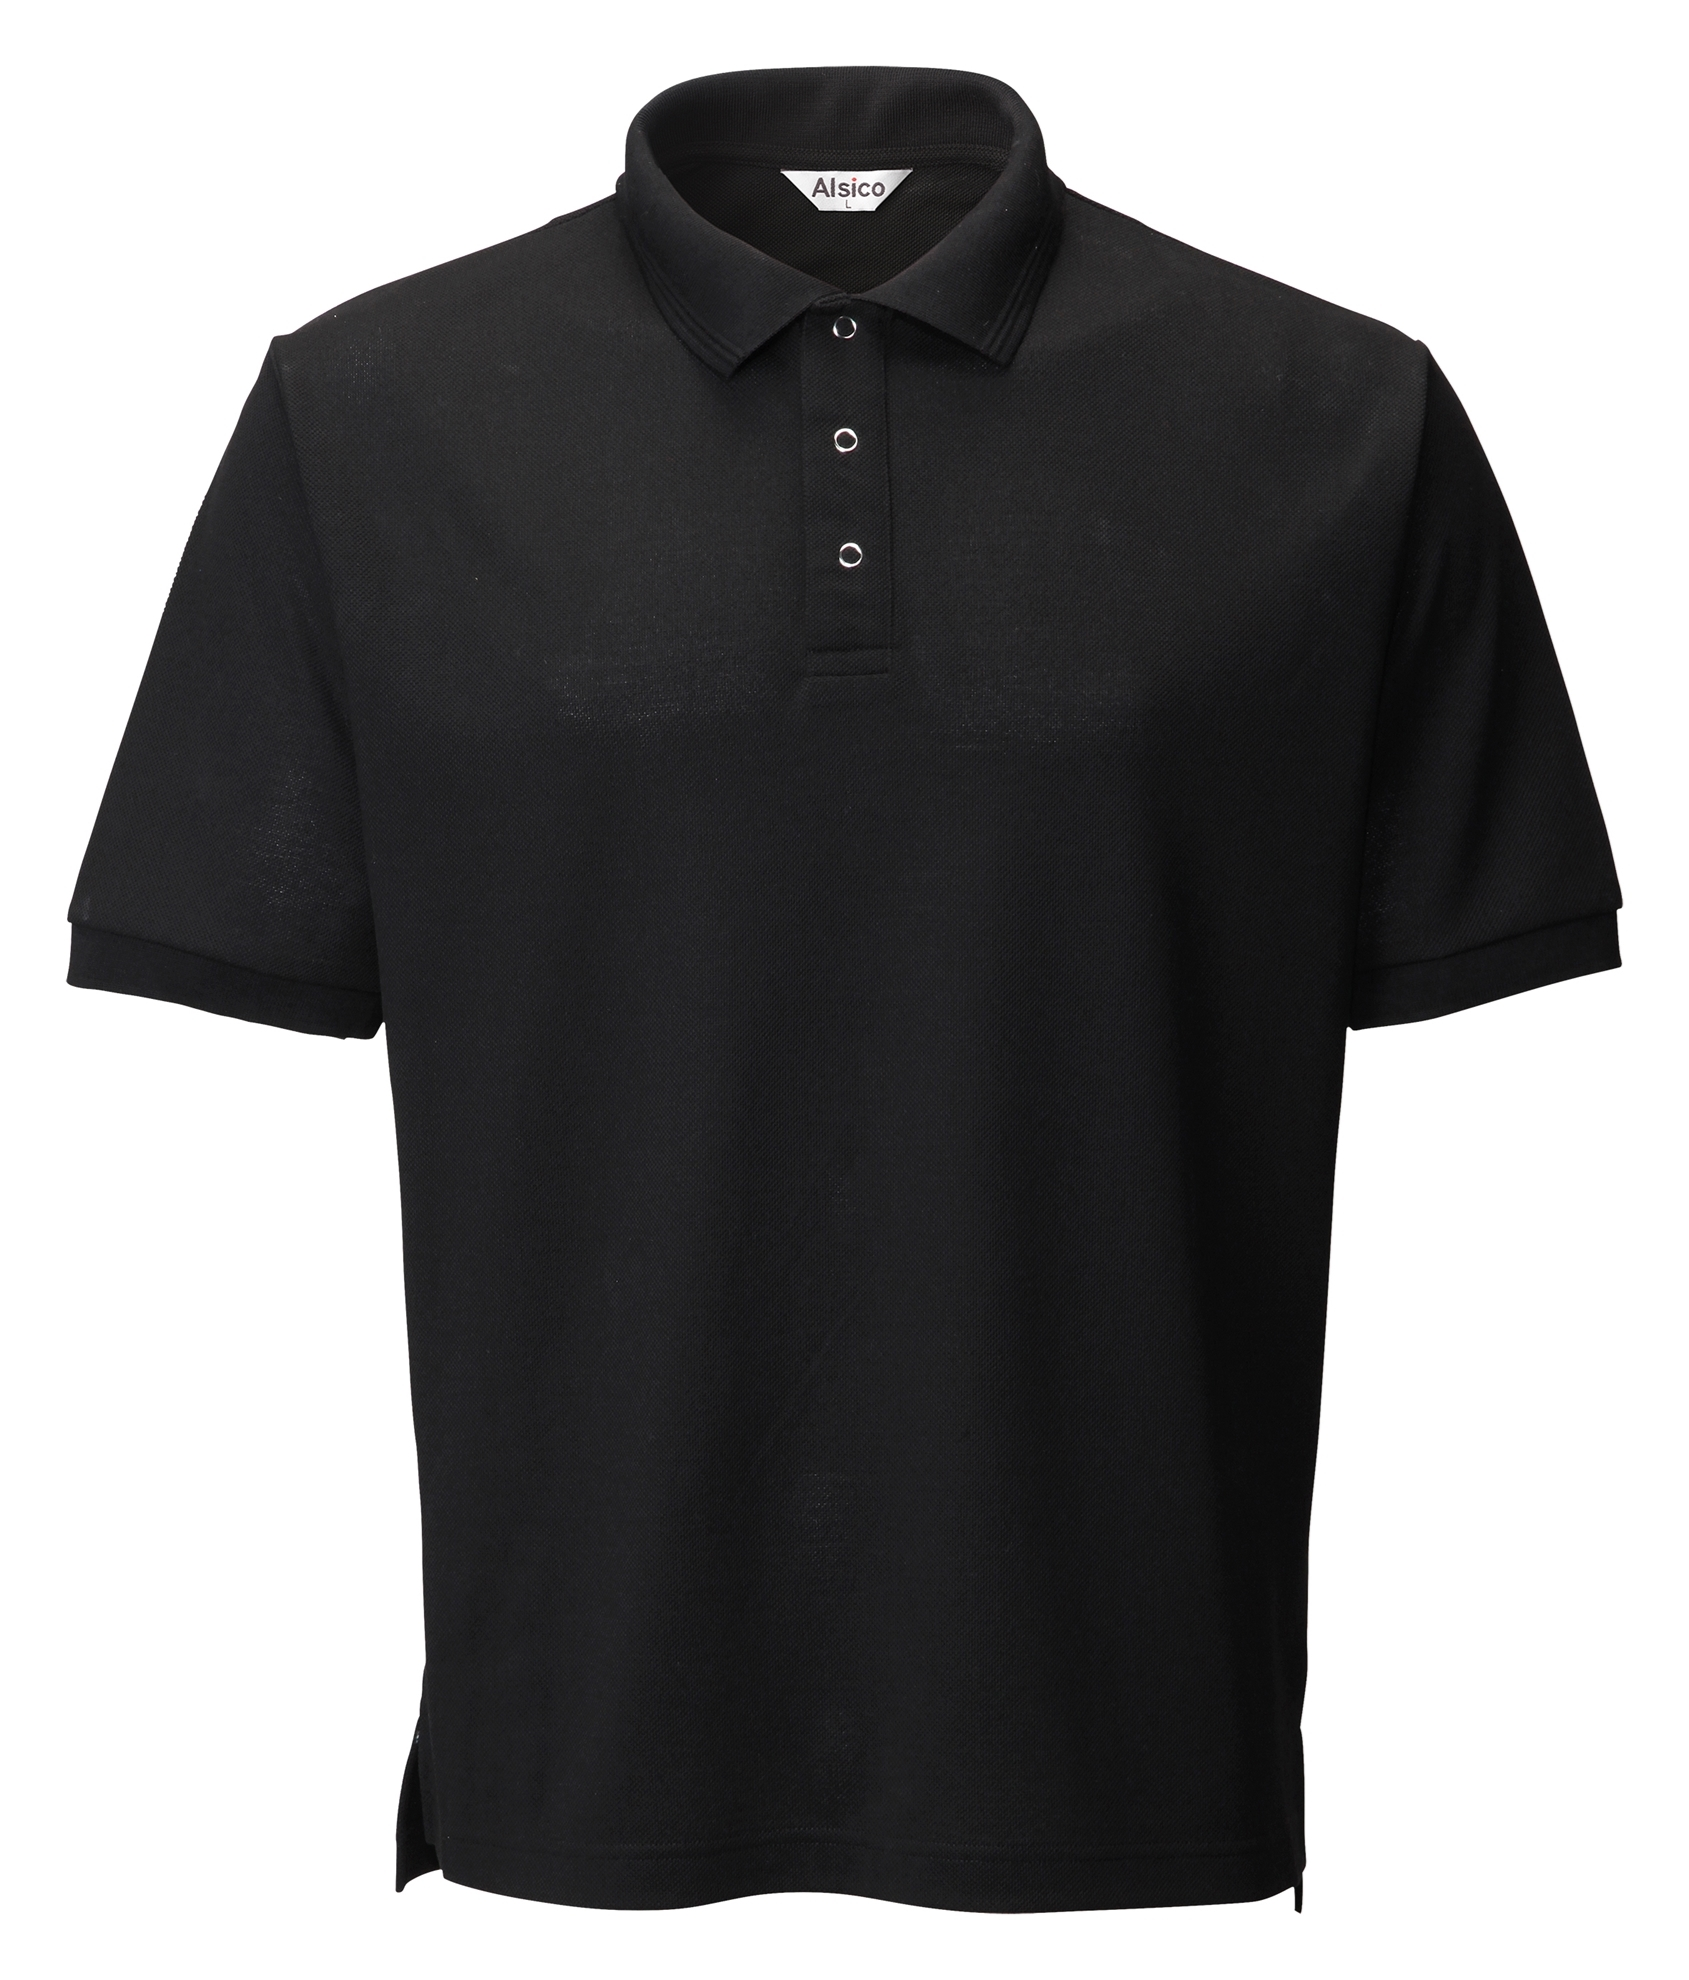 Picture of Industrially Launderable Polo - Black